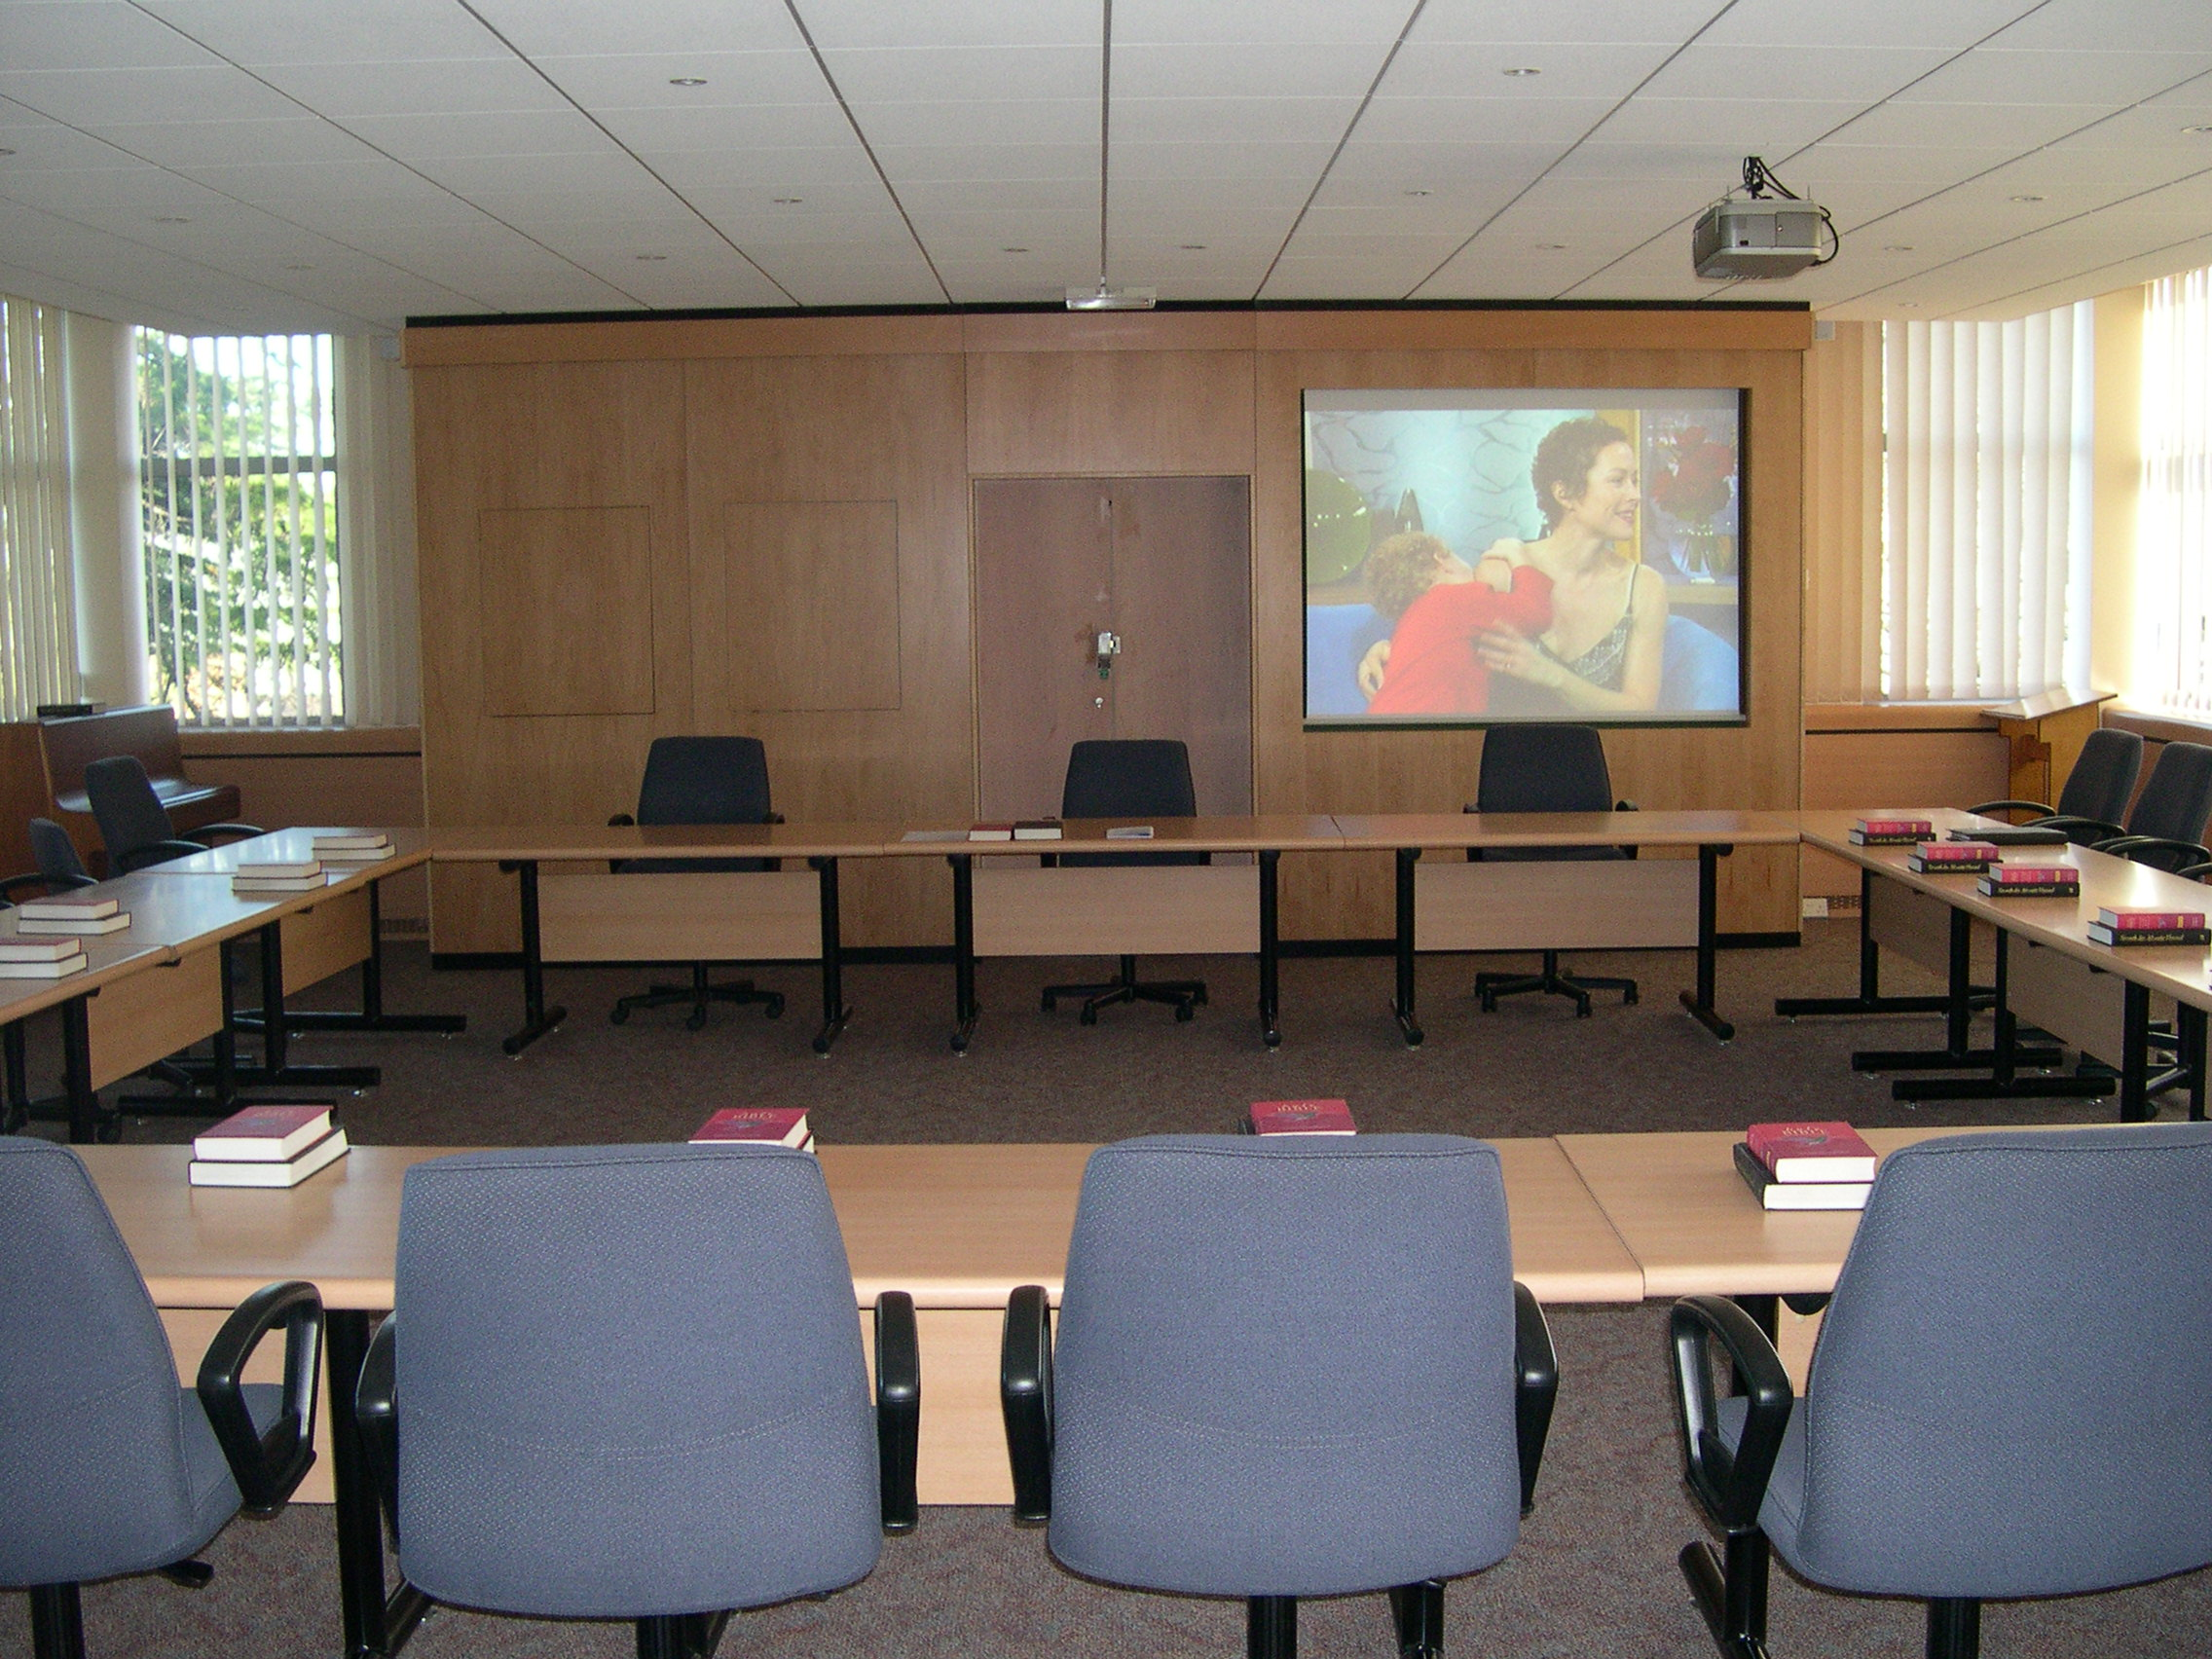 Fixed projector with inset screen in meeting rooms